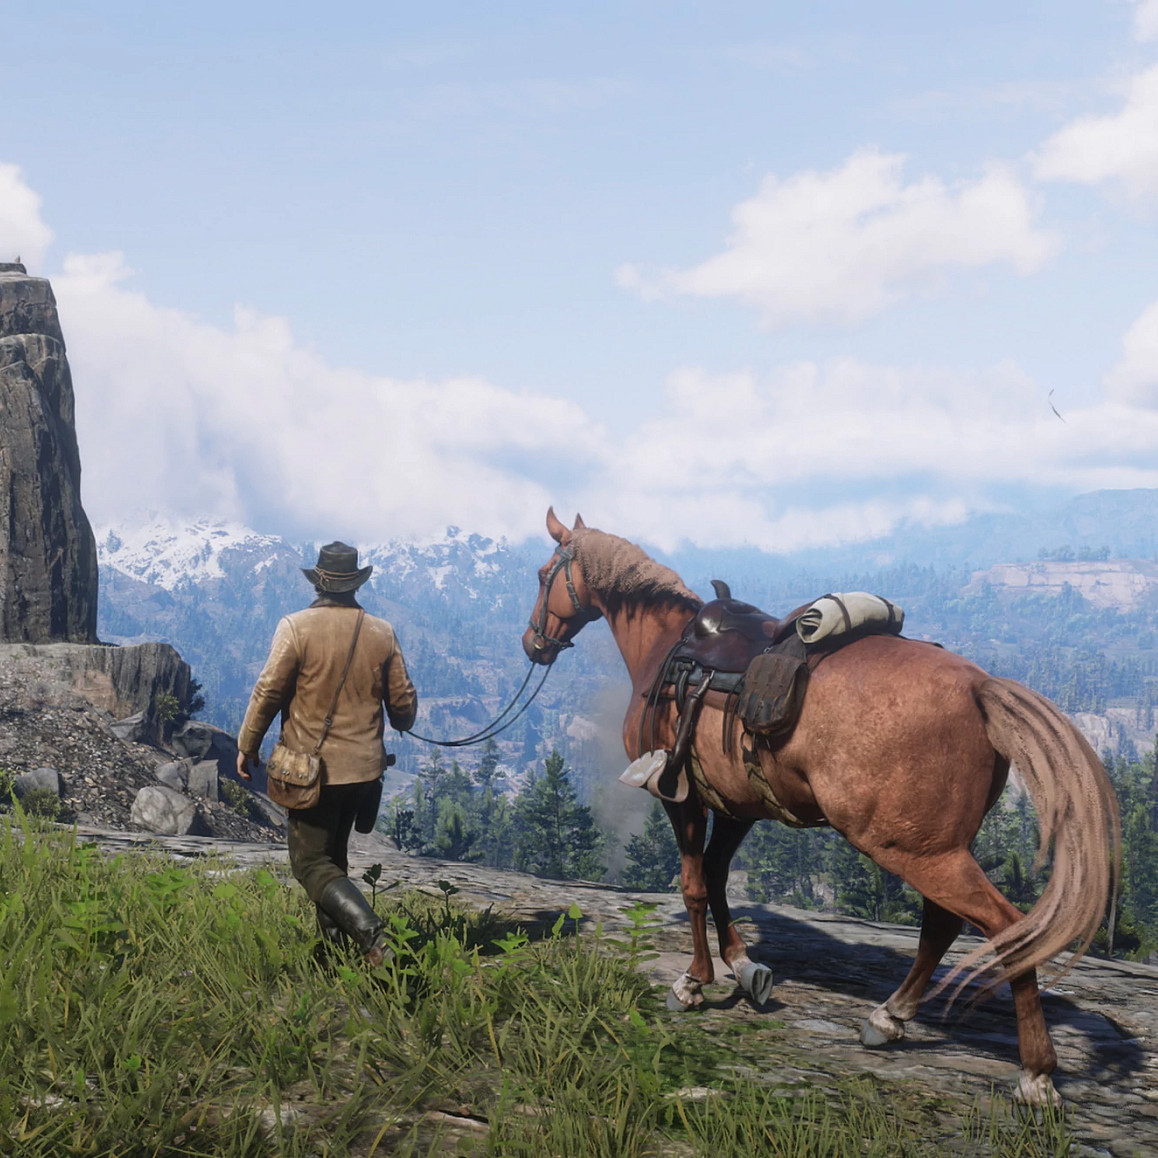 a man walking a horse in front of a mountainscape